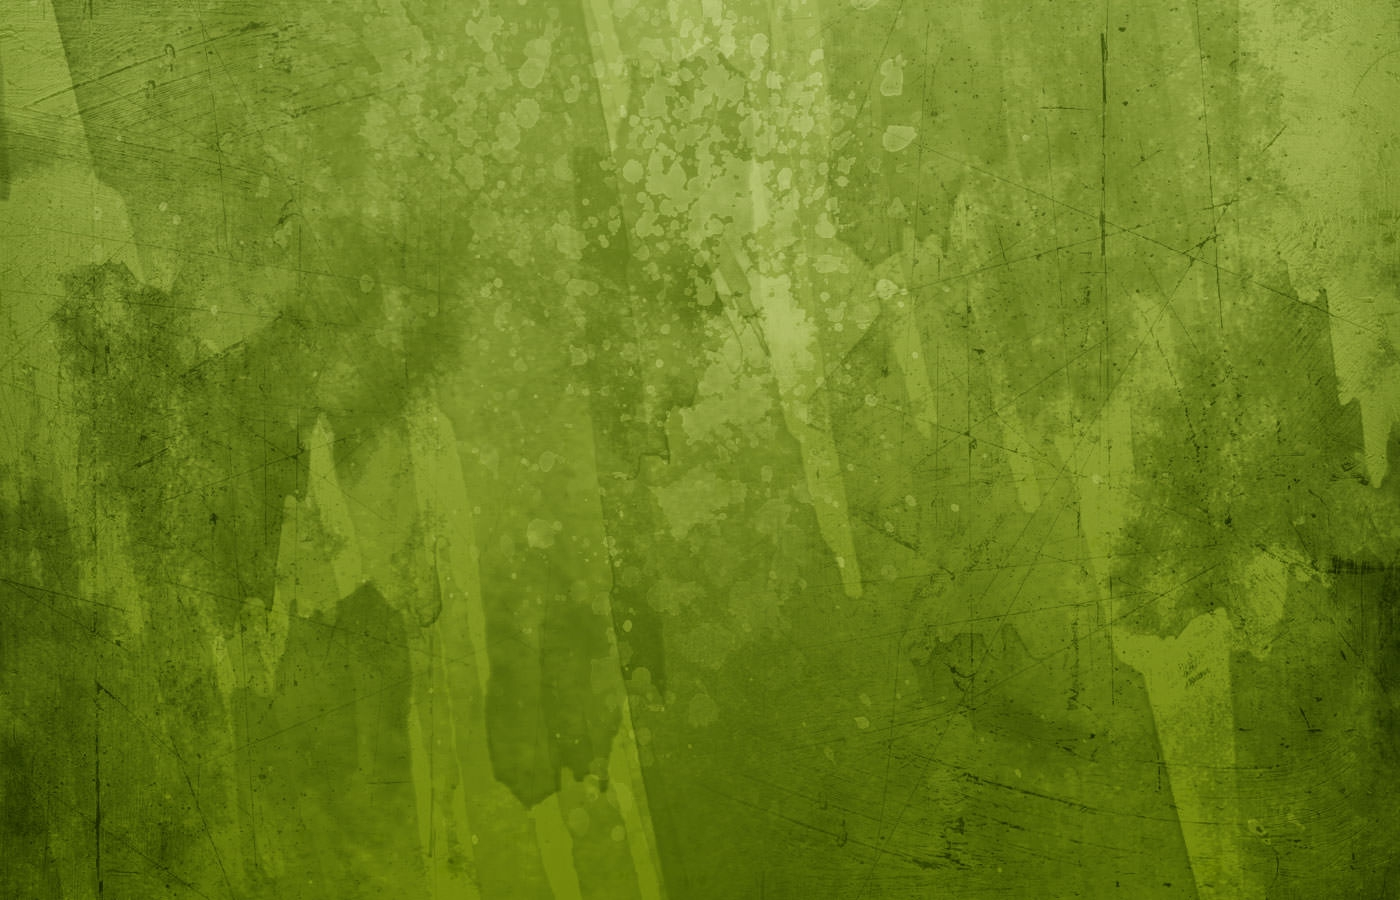 Watercolor Green Grunge Background